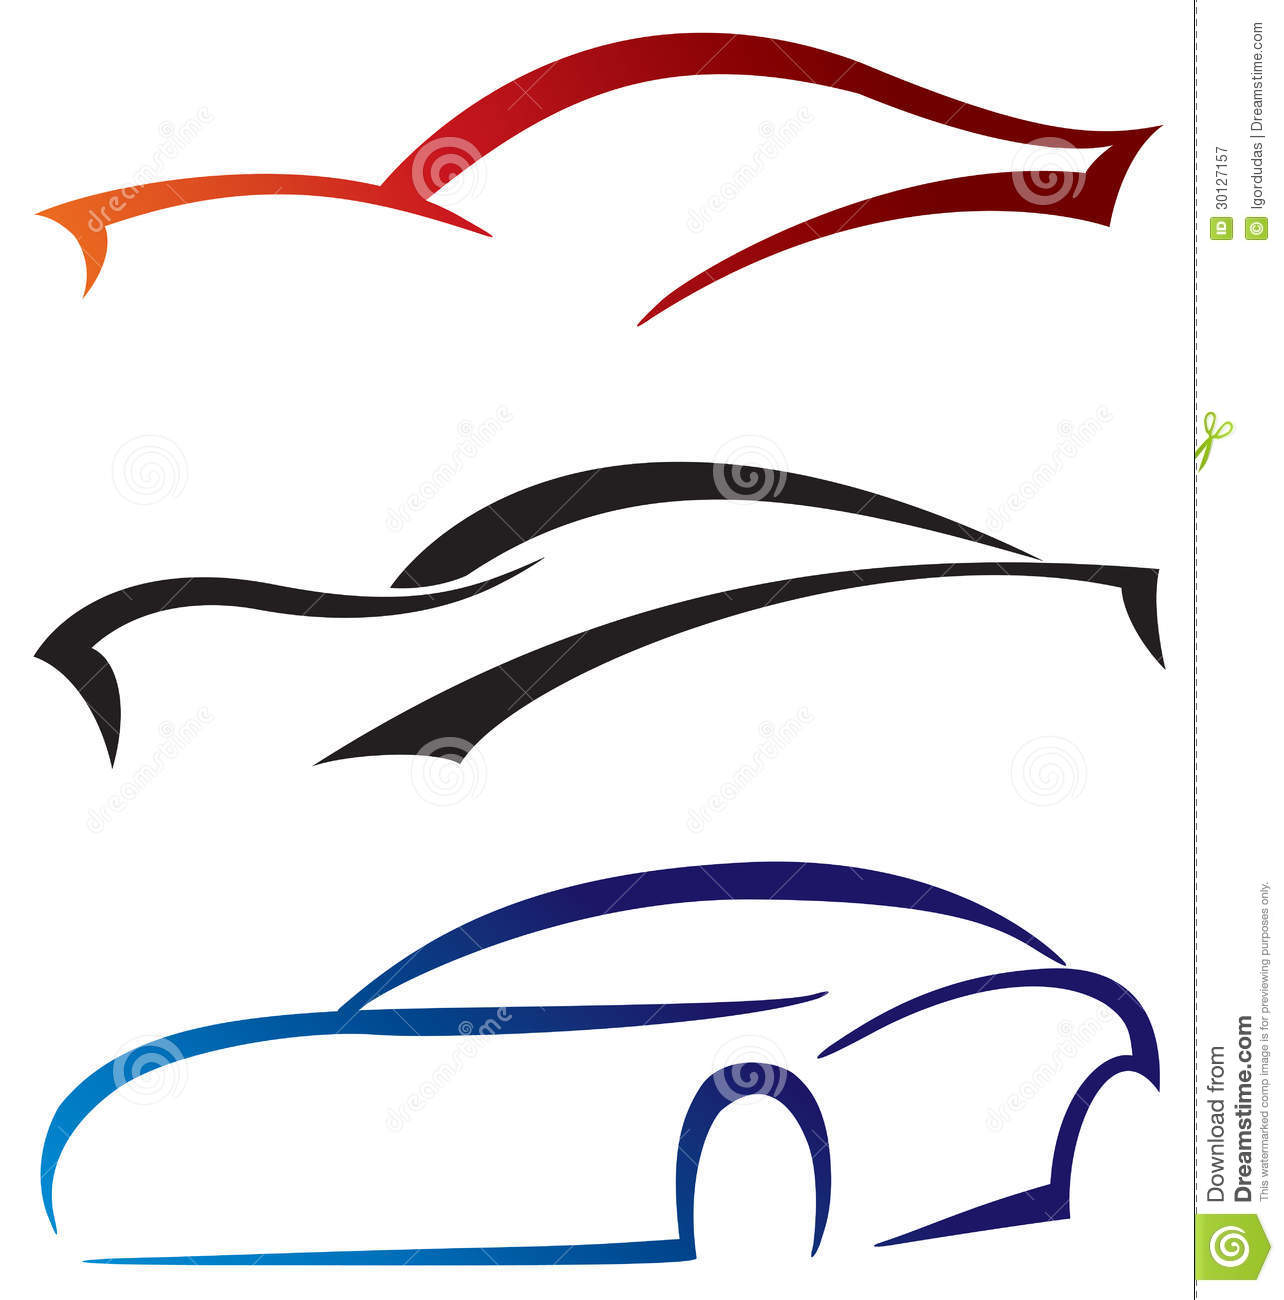 Royalty Free Stock Photography Icons Cars Design Sport Modern Classic Illustration Image30127157 on technology auto parts